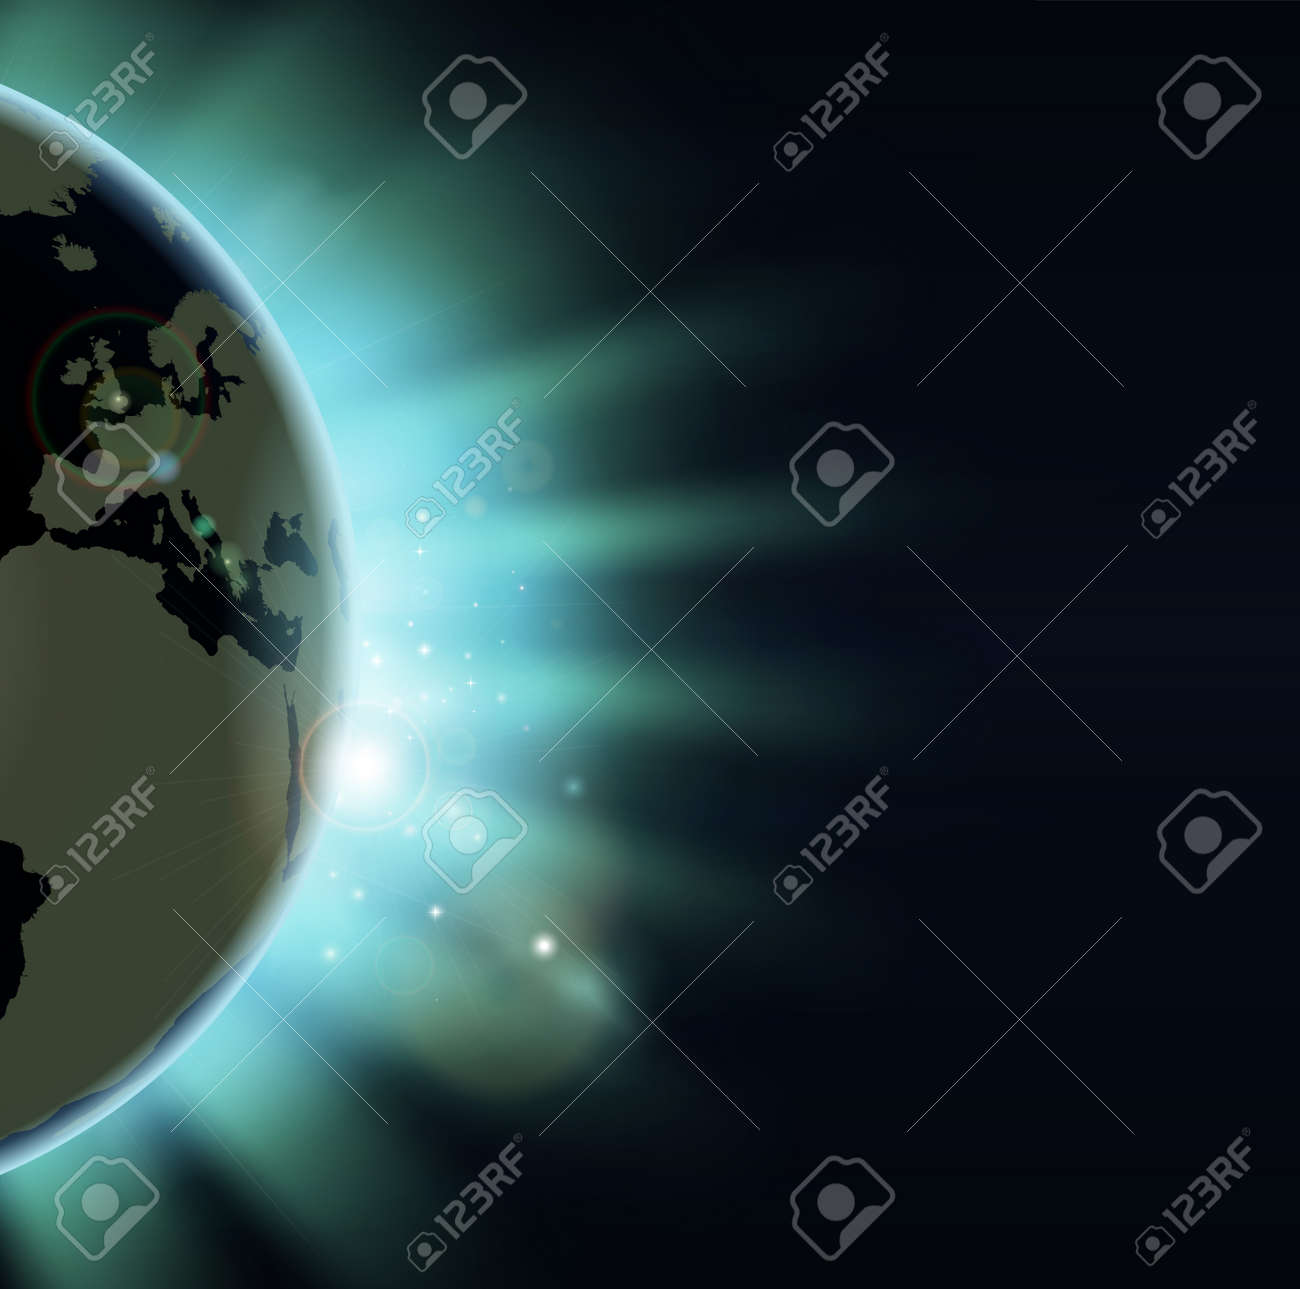 Sun rising over the world globe. Europe and Africa showing. Stock Vector - 12347312